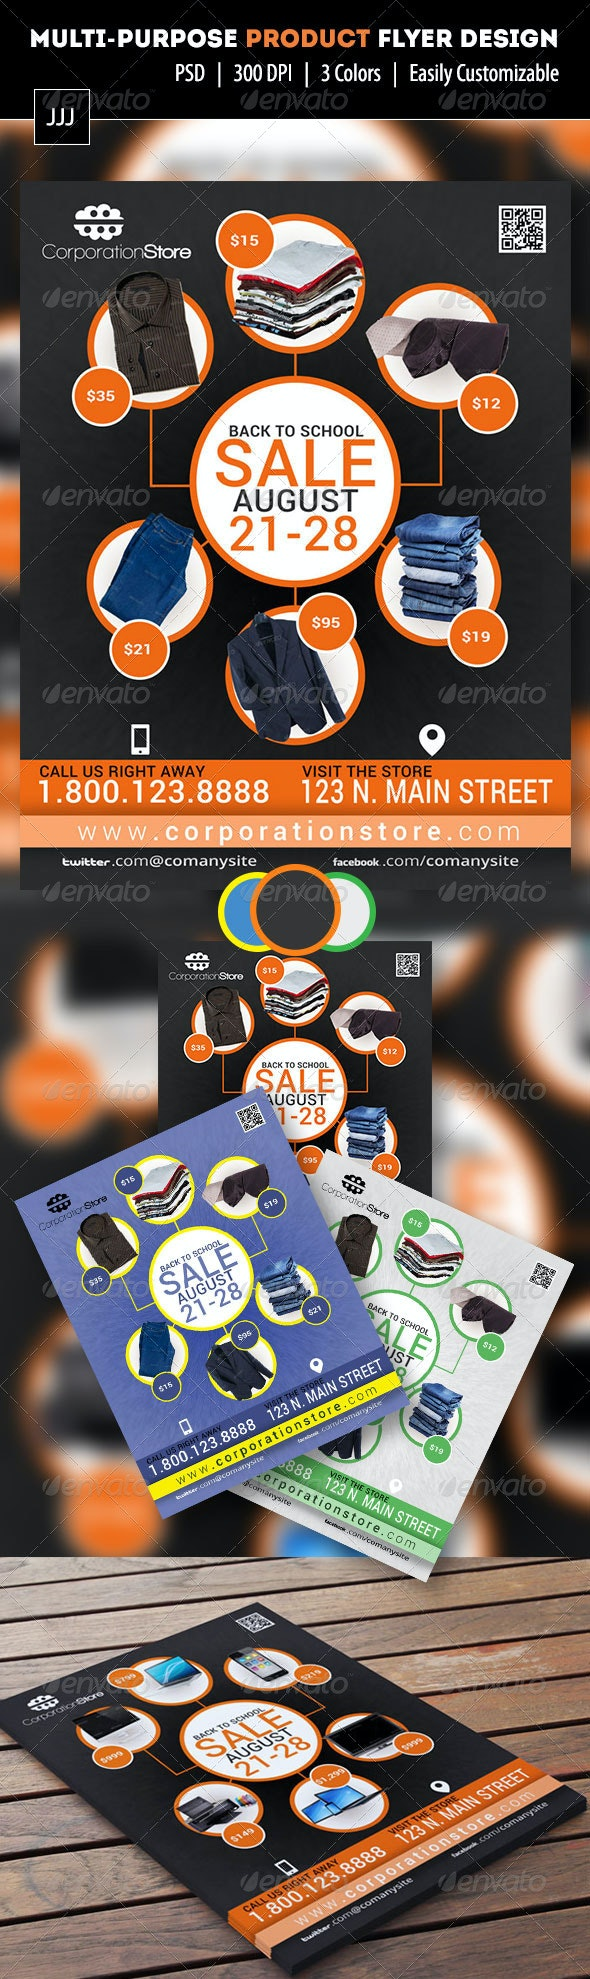 Multipurpose Product Flyer 1 - Commerce Flyers